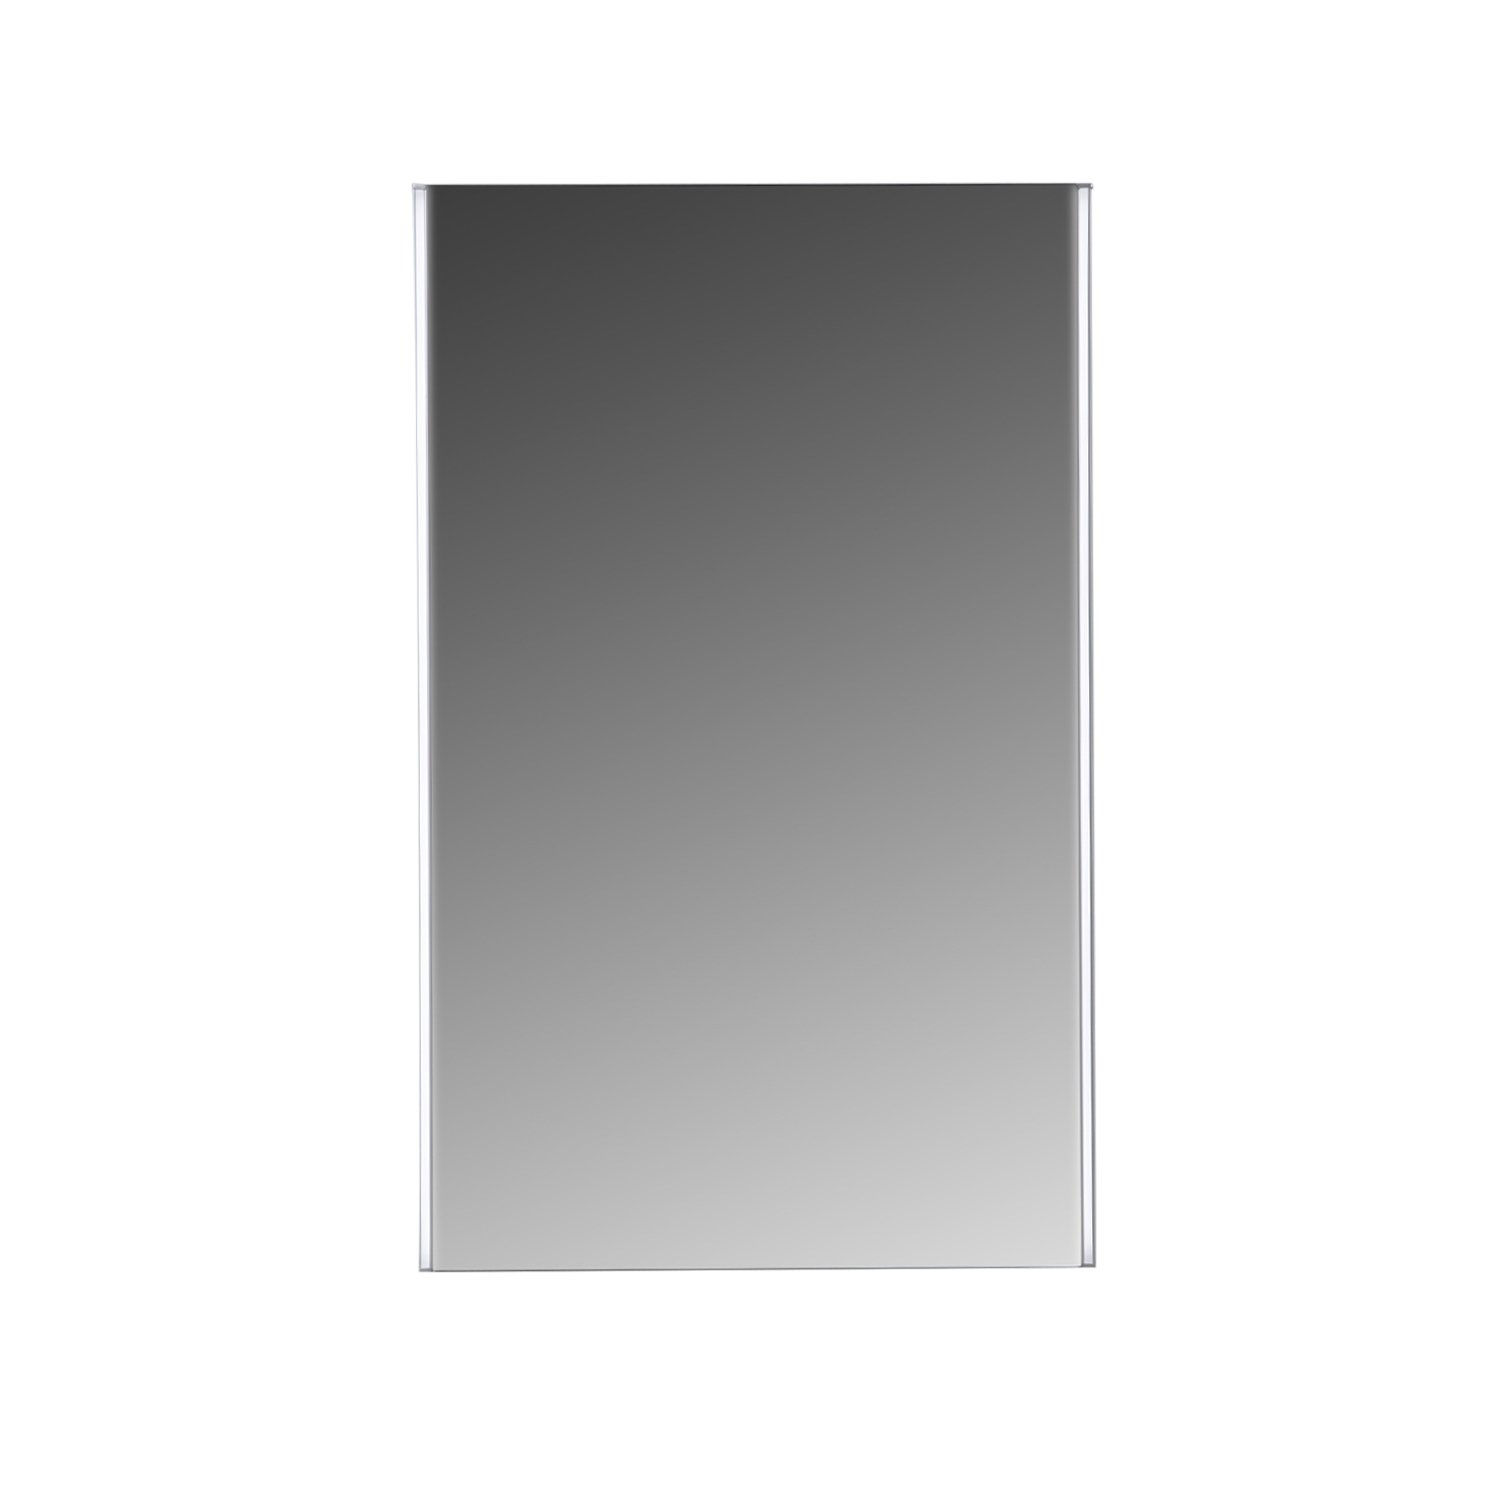 MAYKKE Peyton 20x32'' LED Mirror with Defogger, Wall Mounted Lighted Bathroom Vanity Mirror, Frameless Mirror, Horizontal or Vertical Mirror with Side LED Lighting UL Certified, LMA1042001